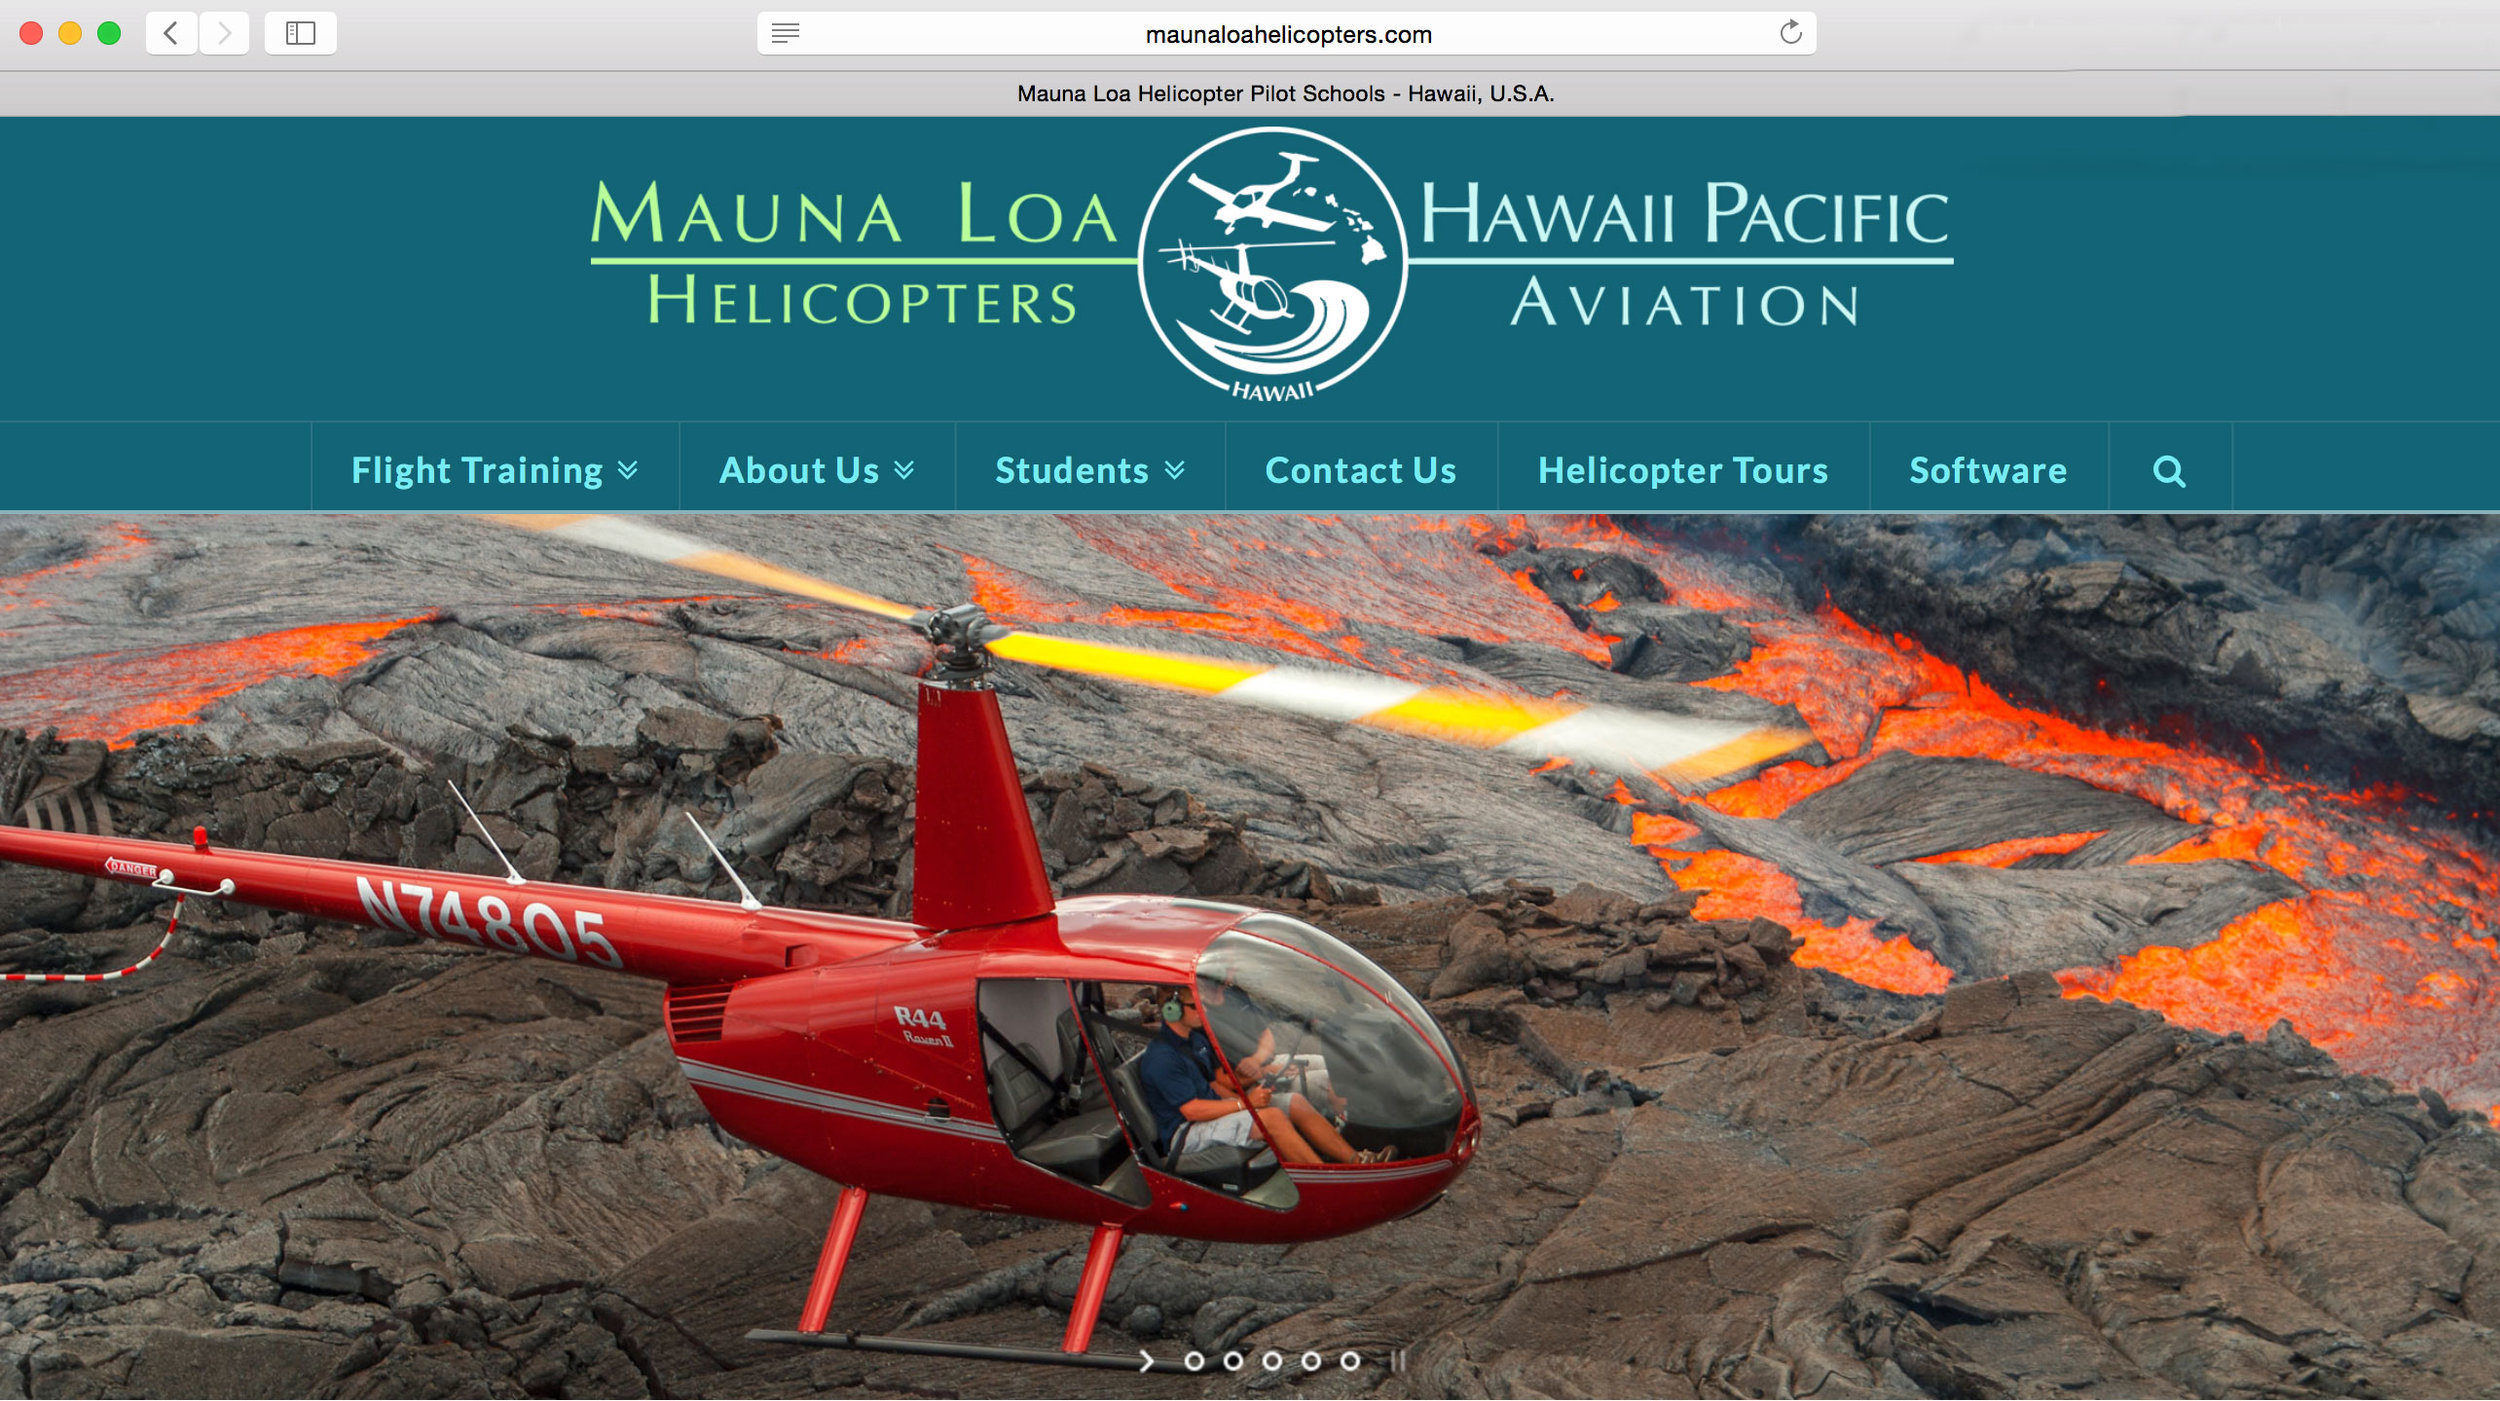 mauna_loa_website_splash_a.jpg